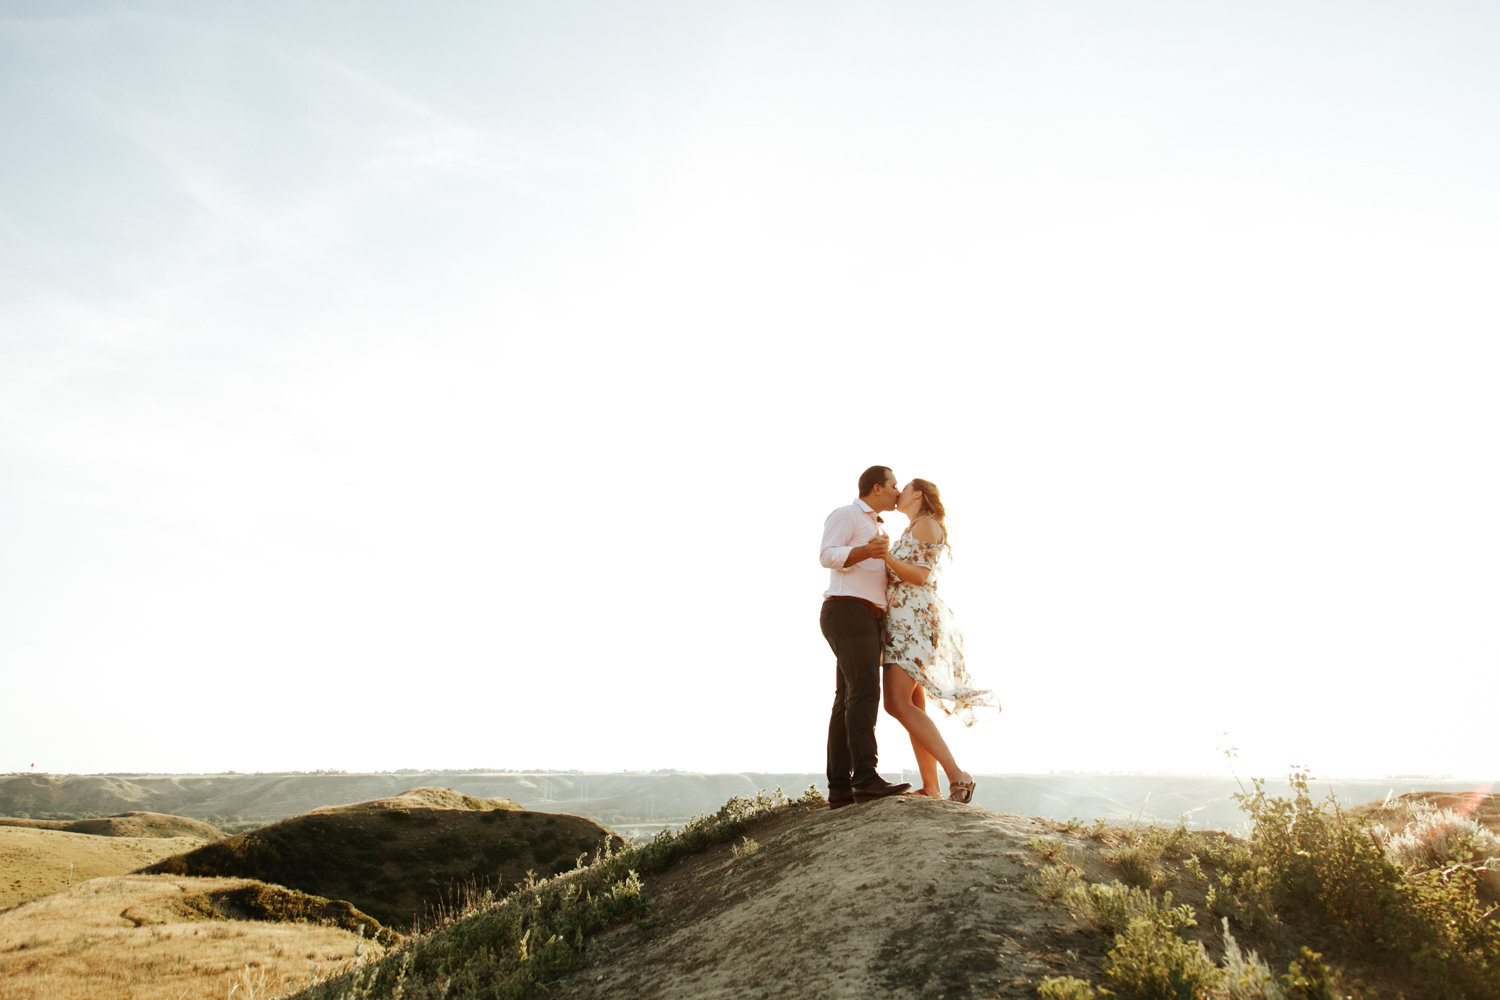 lethbridge-wedding-photographer-love-and-be-loved-photography-katie-kelli-engagement-picture-image-photo-23.jpg